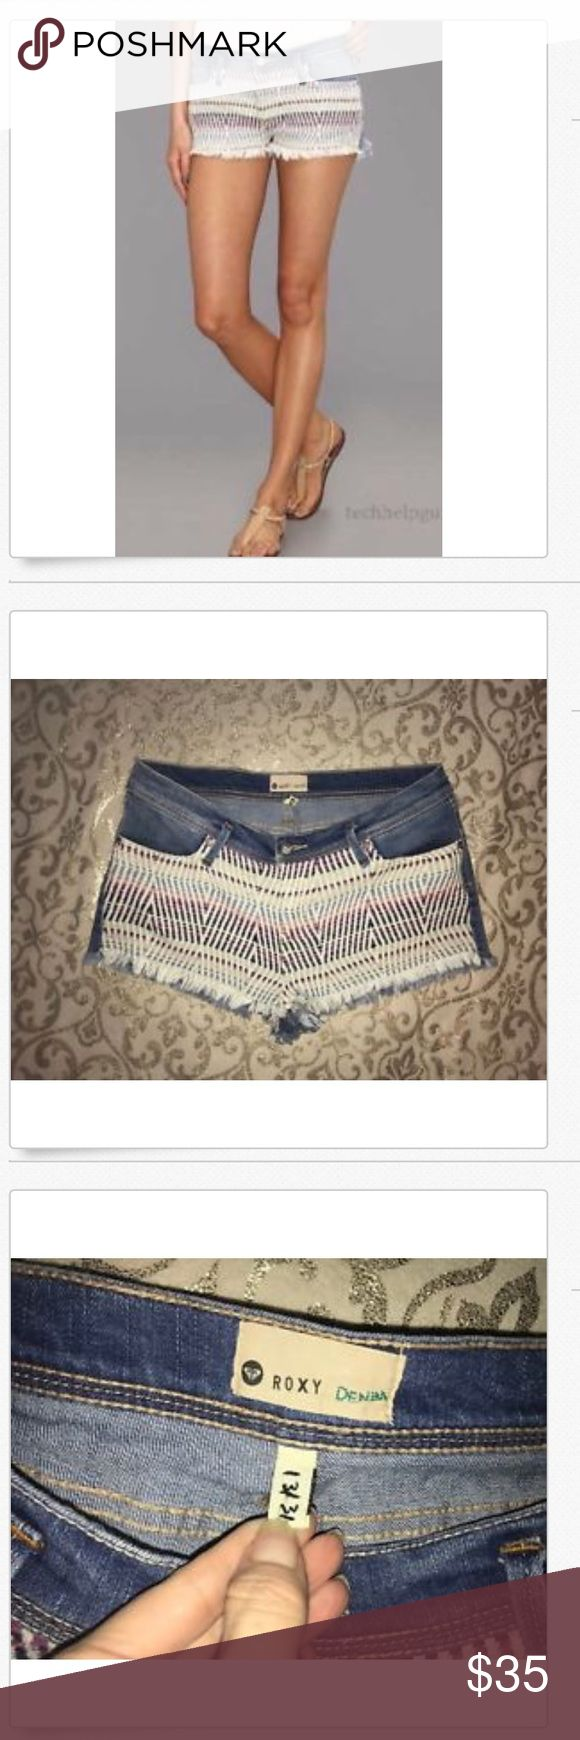 ROXY Low Rise Stretch Aztec Crocheted Jean Shorts! ROXY Low Rise Stretch Aztec Crocheted Multi-Color Jean Shorts!! 16.5 across & 8.5 rise Great Used!! Factory distressed!! 84% cotton, 15%b polyester & 1% spandex Roxy Shorts Jean Shorts